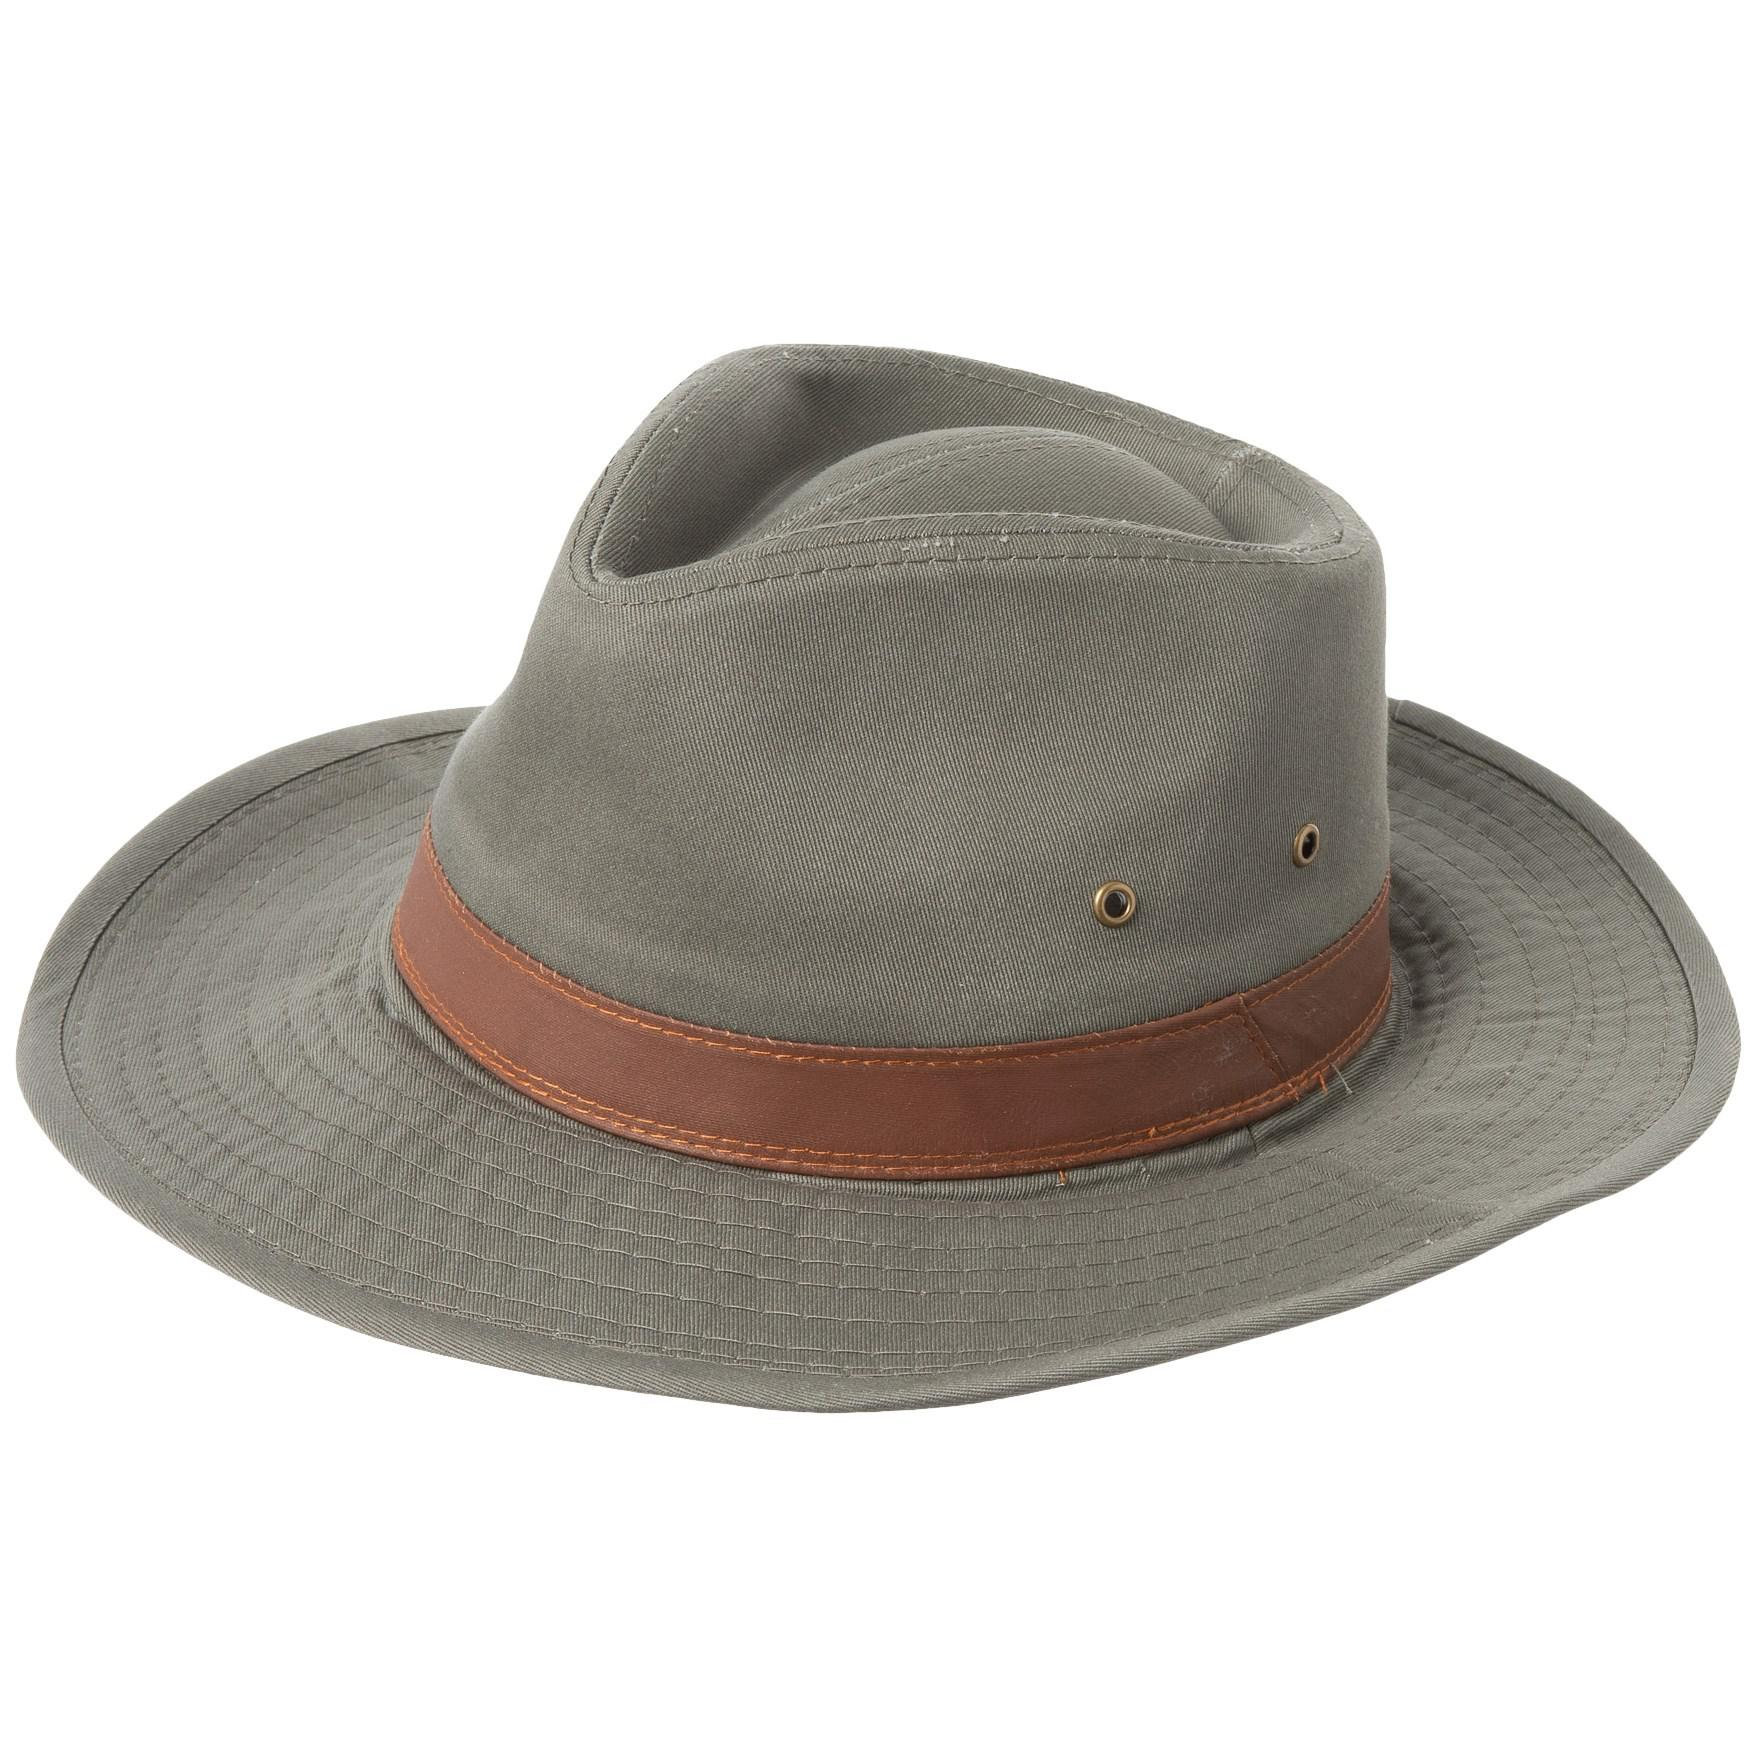 40533498930 Lyst - Dorfman Pacific Garment-washed Twill Shapeable Outback Hat in ...